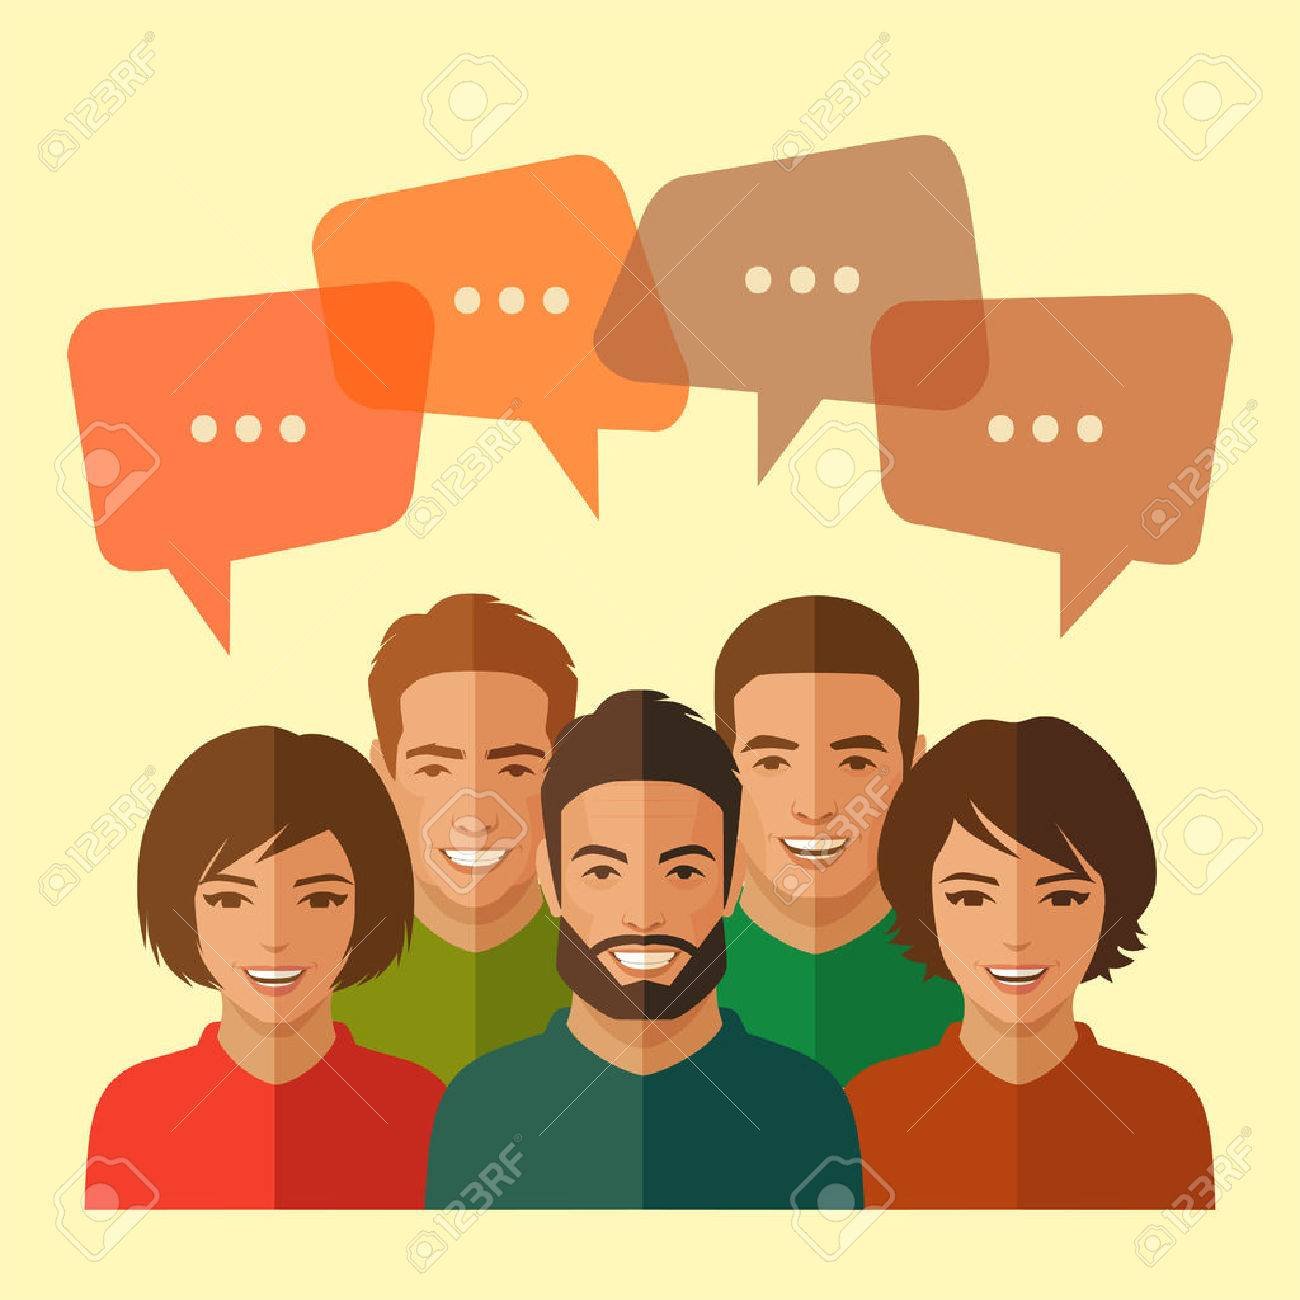 smile people group, business team, chat dialogue - 50465435